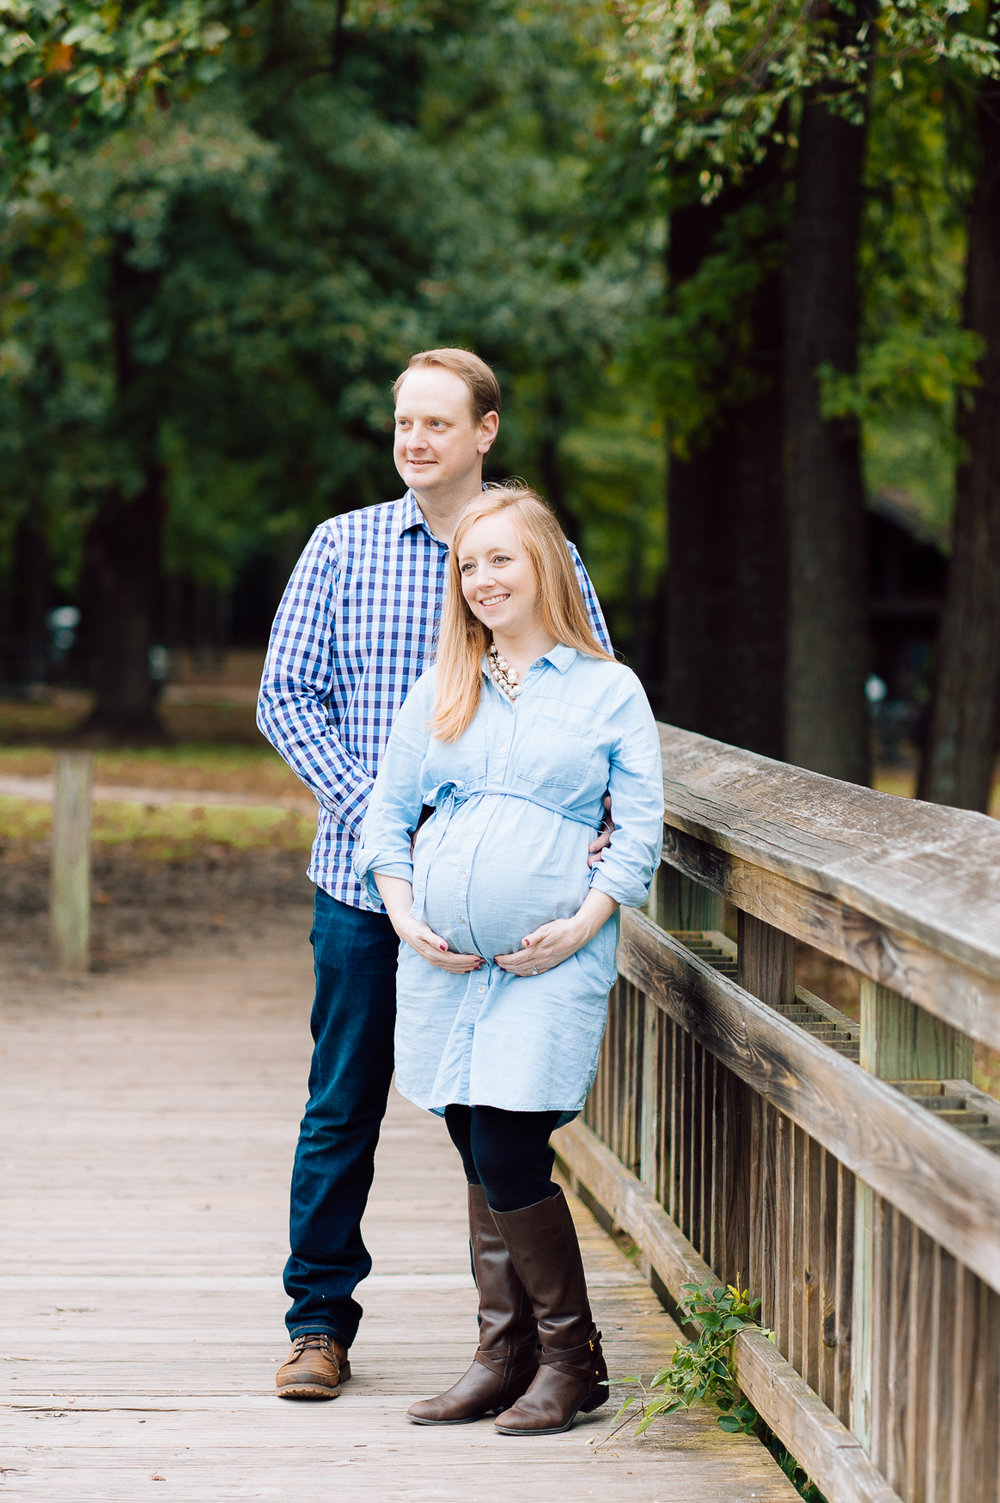 maternity_fallphotos_fredericksburgphotographer_leesylvania_youseephotography_Heather (16).jpg